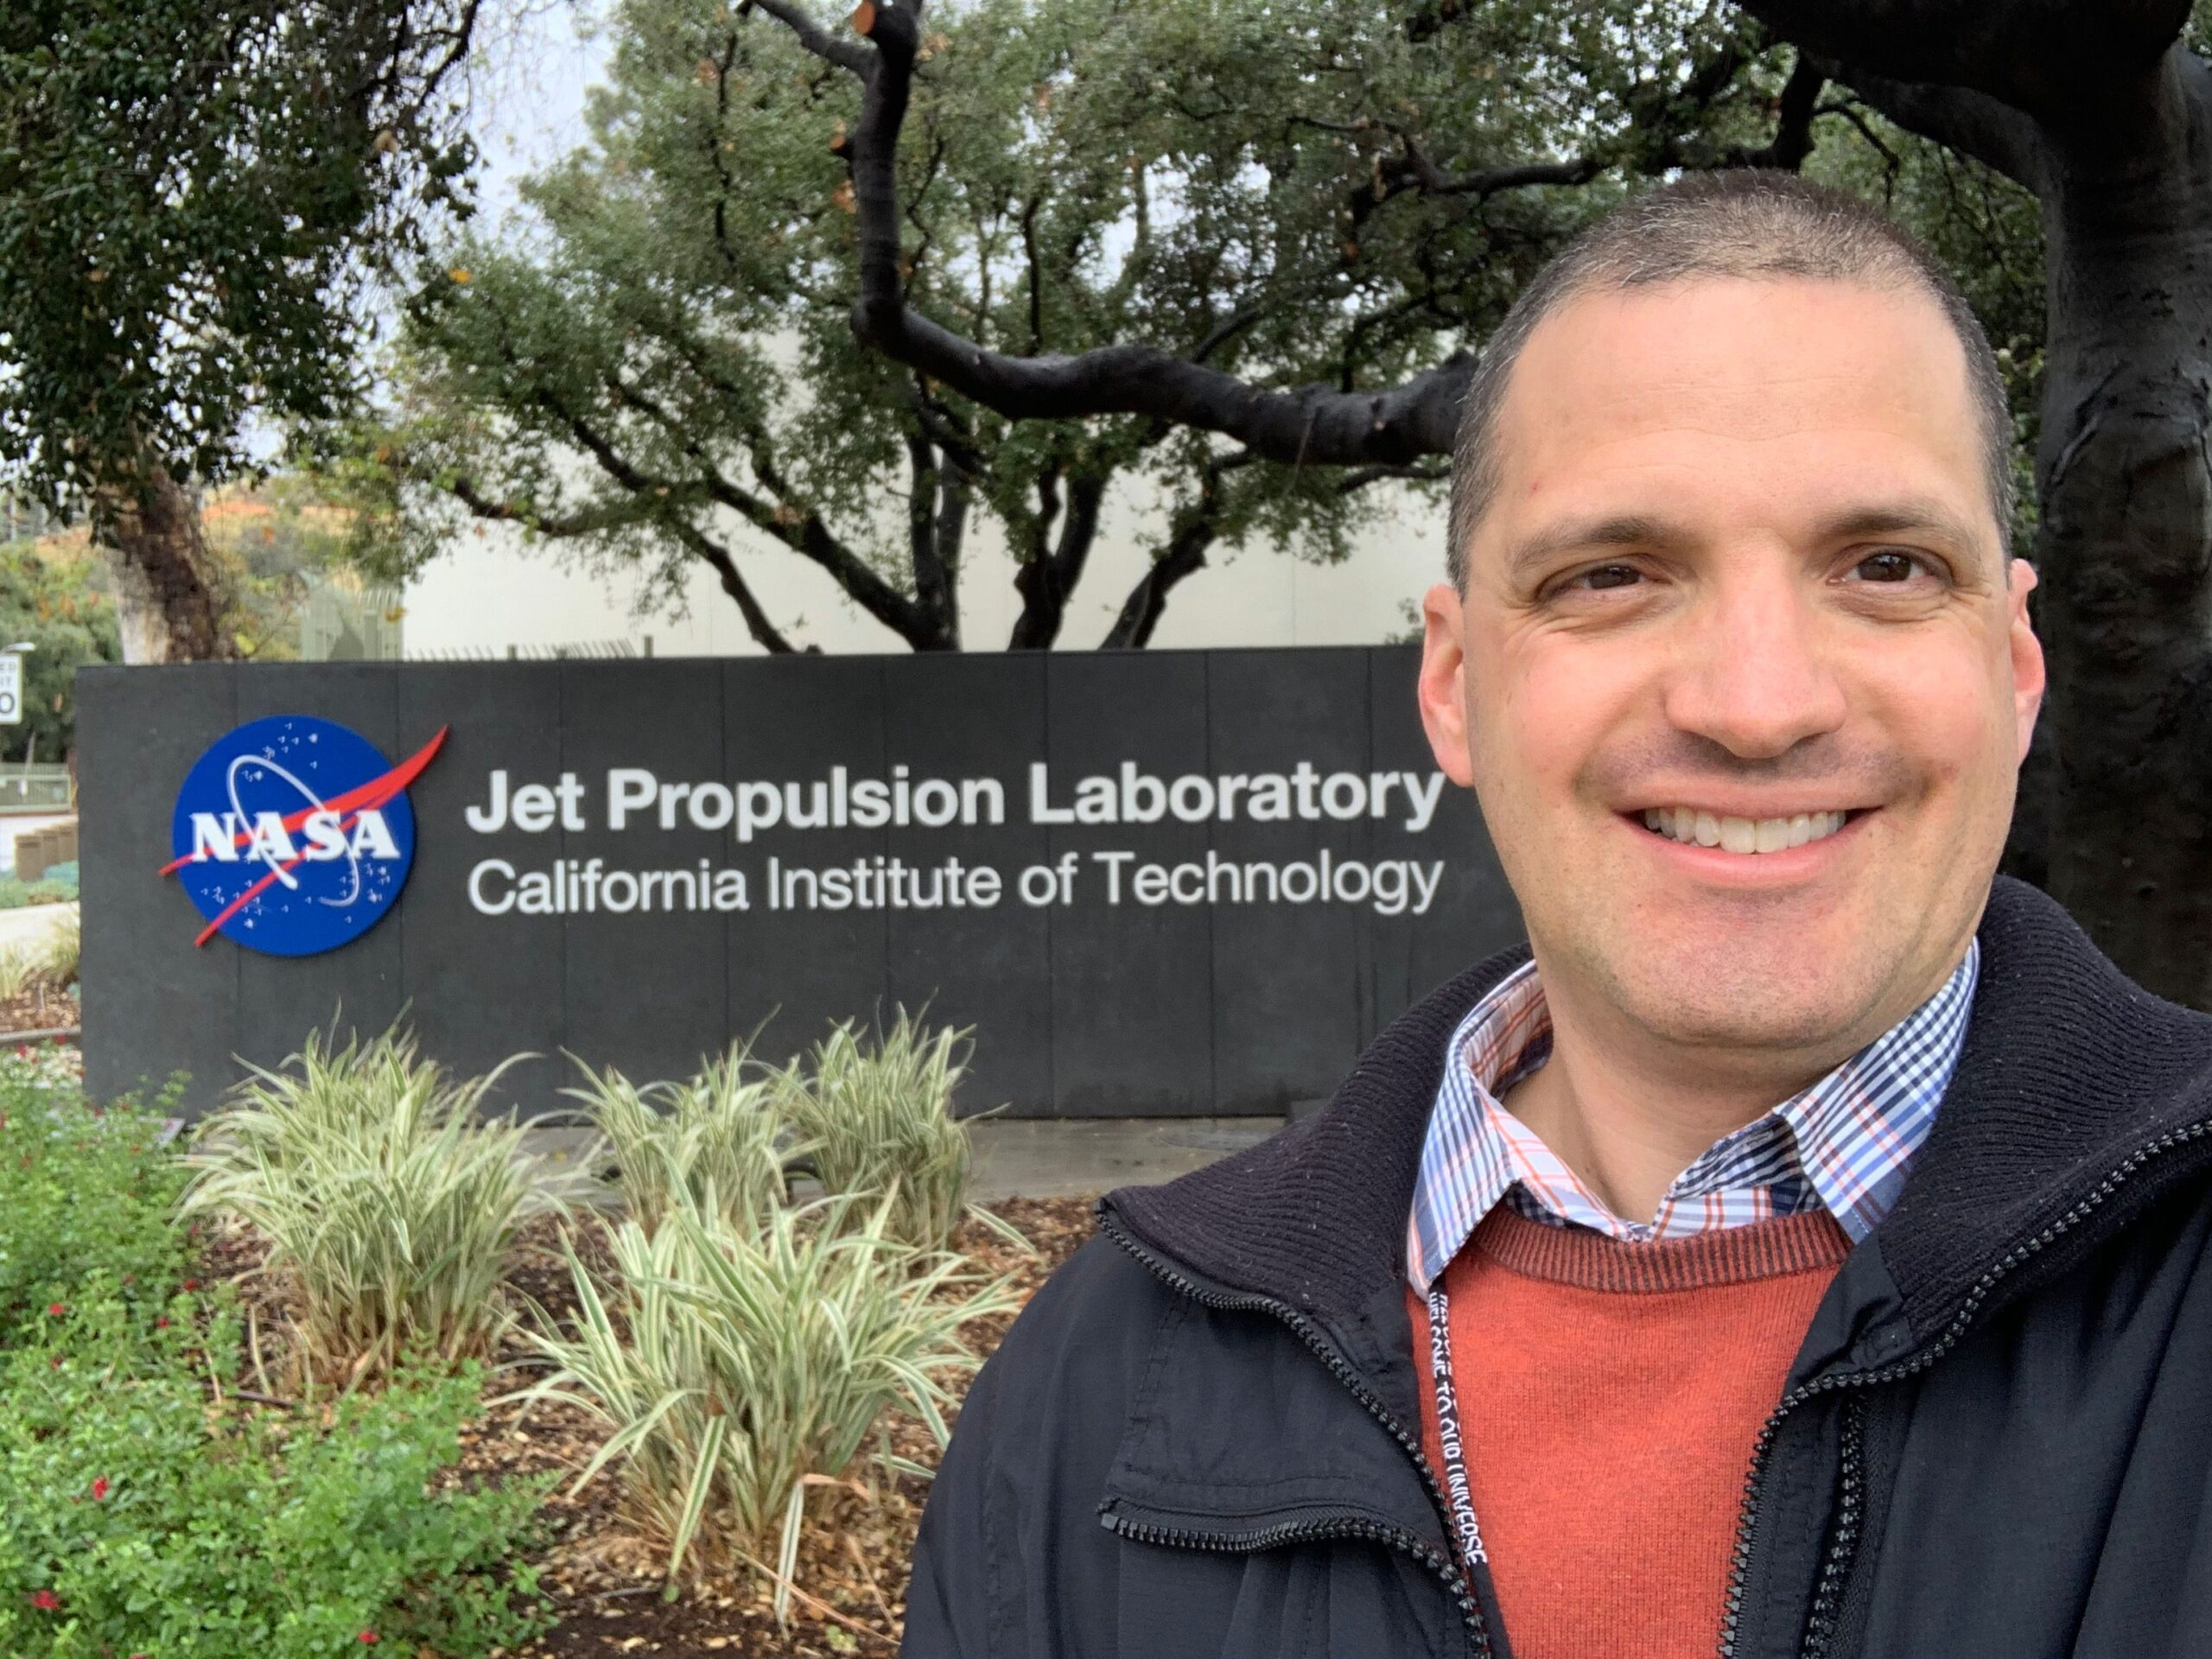 closeup smiling man before sign saying NASA Jet Propulsion Laboratory